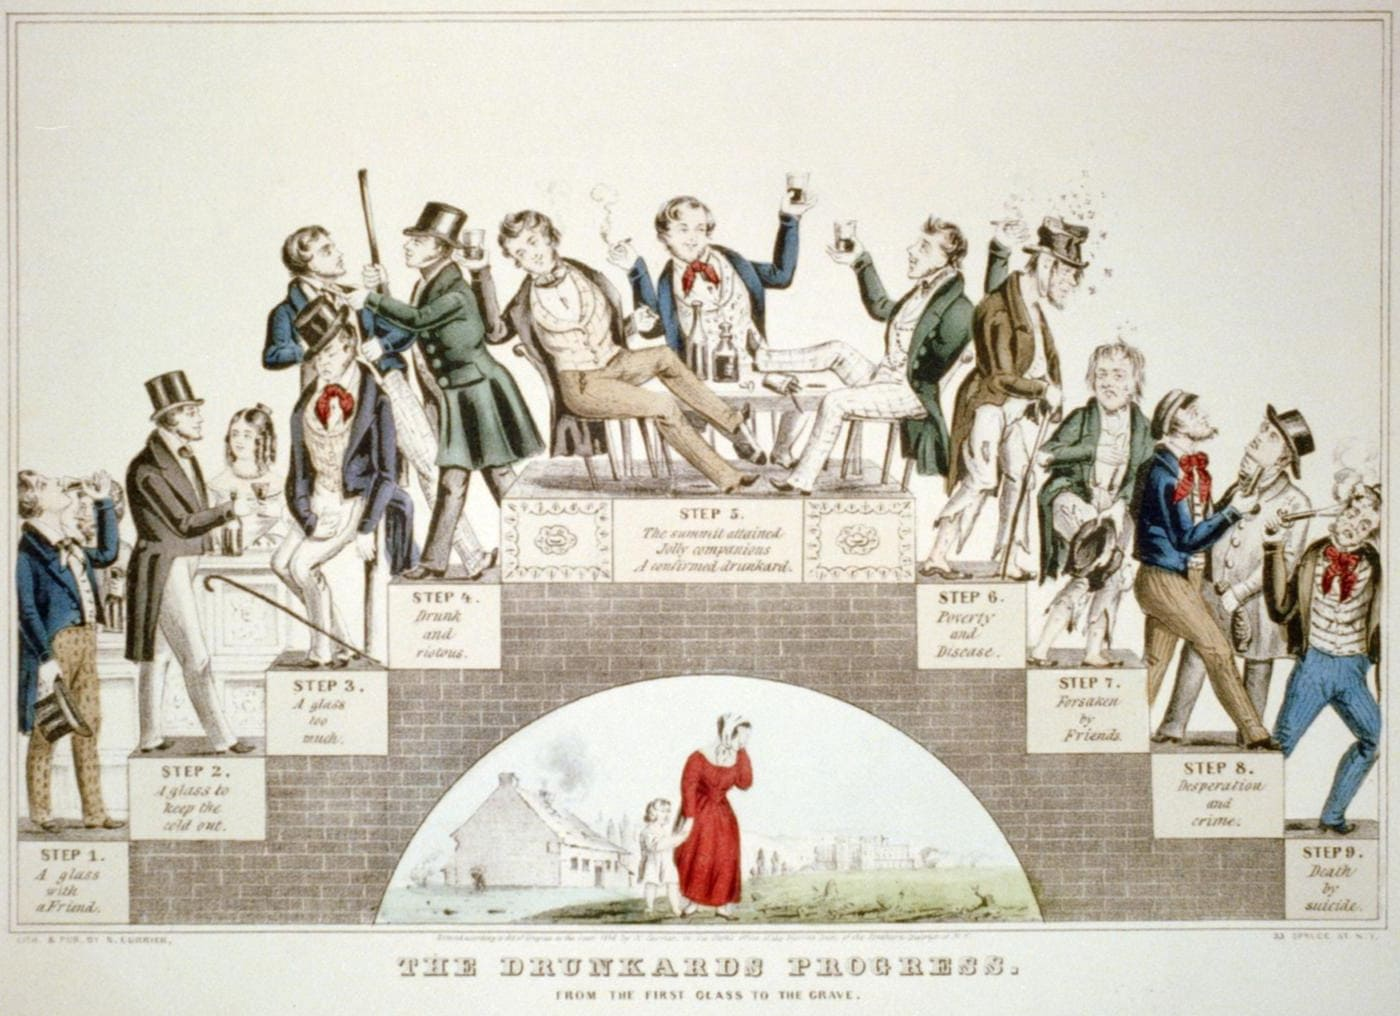 The Drunkard's Progress- Prohibition